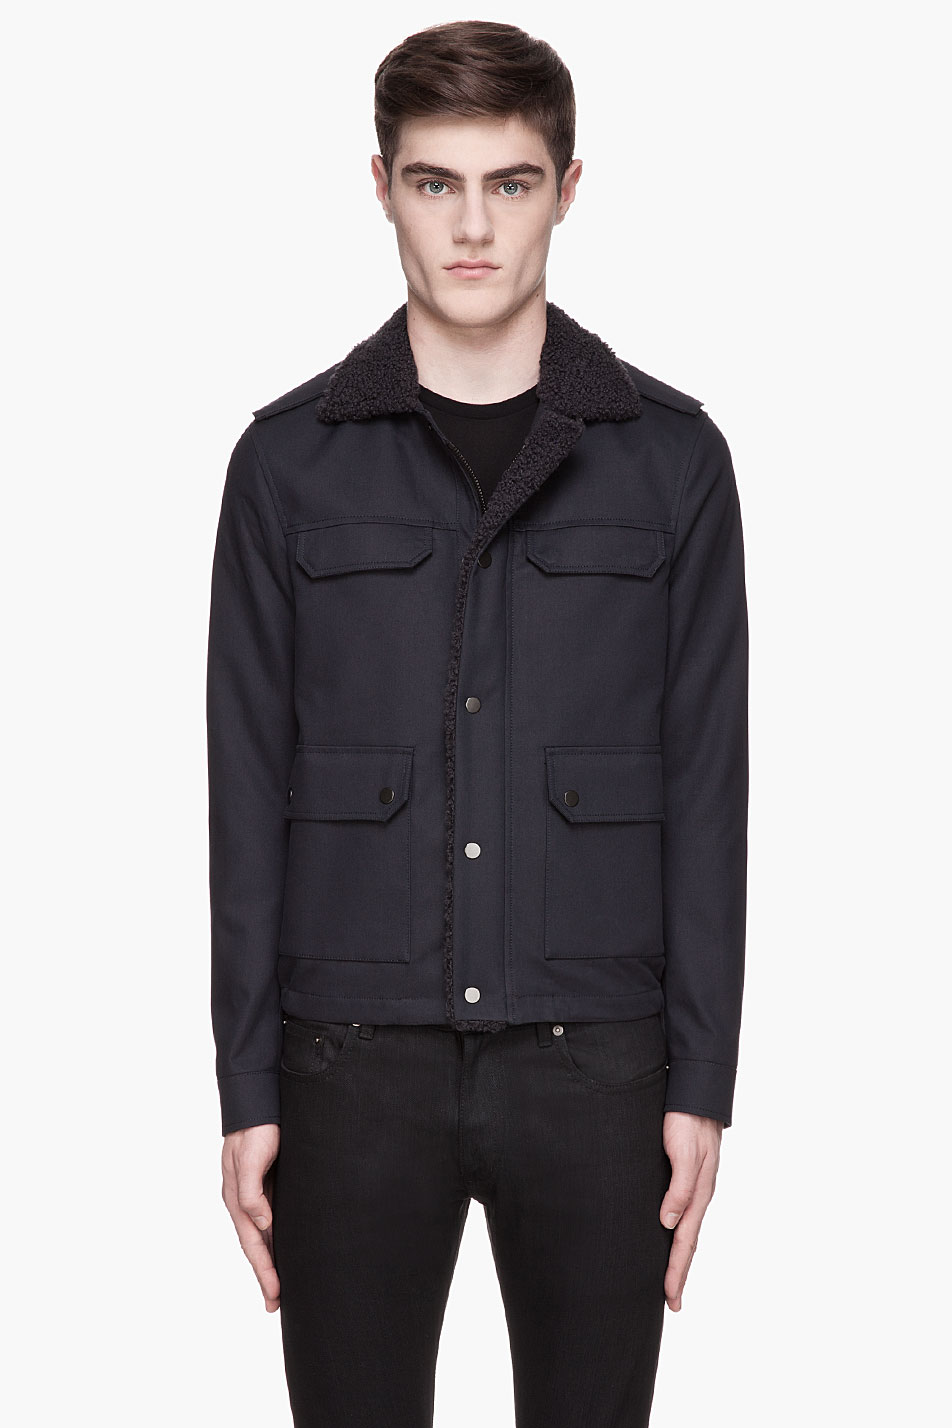 Lanvin-M65-Jacket-Field-Coat